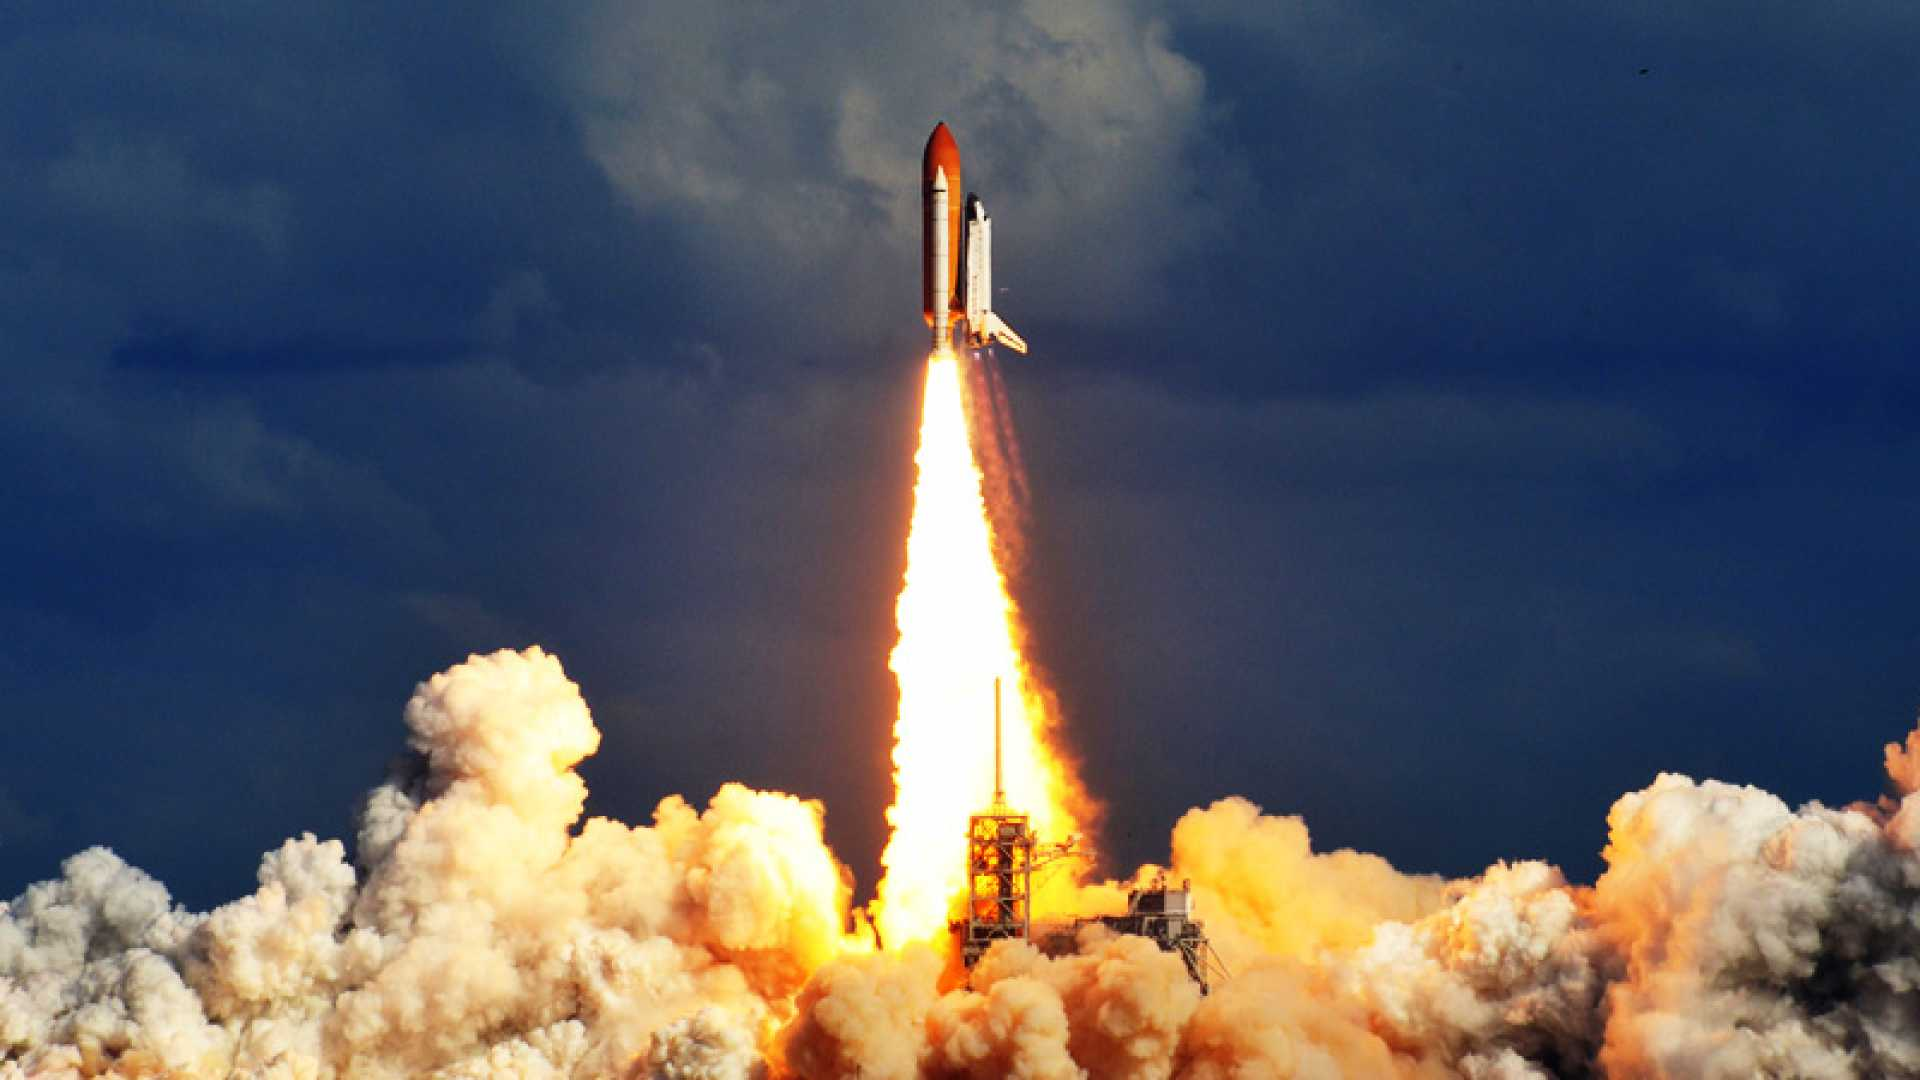 Project Management Advice From a Rocket Scientist